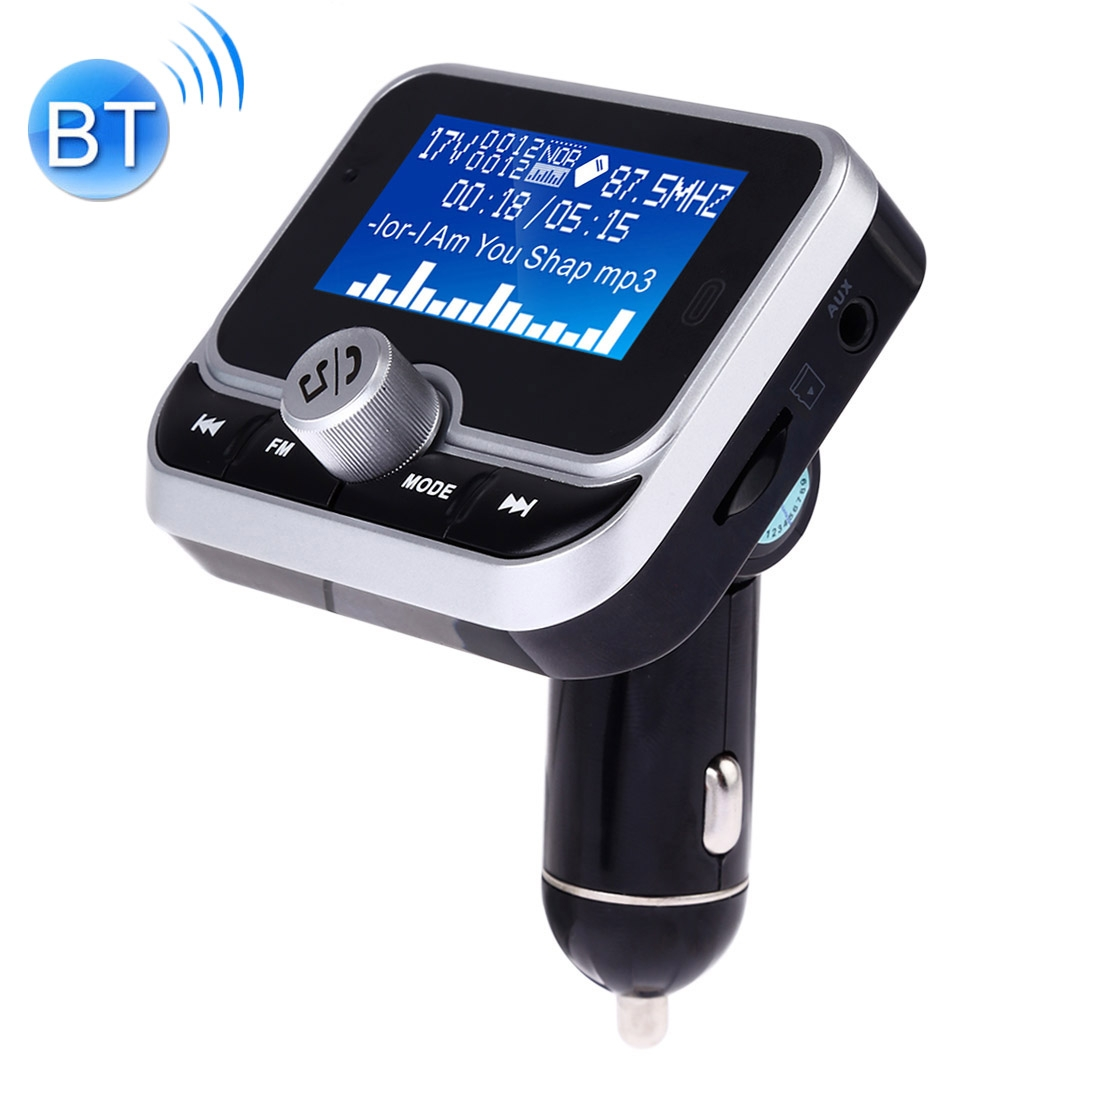 Bc32 Dual Usb Charging Bluetooth Hand Free Car Charger Fm Transmitter Mp3 Music Player Car Kit Support Hands Free Call Micro Sd Recording Voltage Detection Alexnld Com